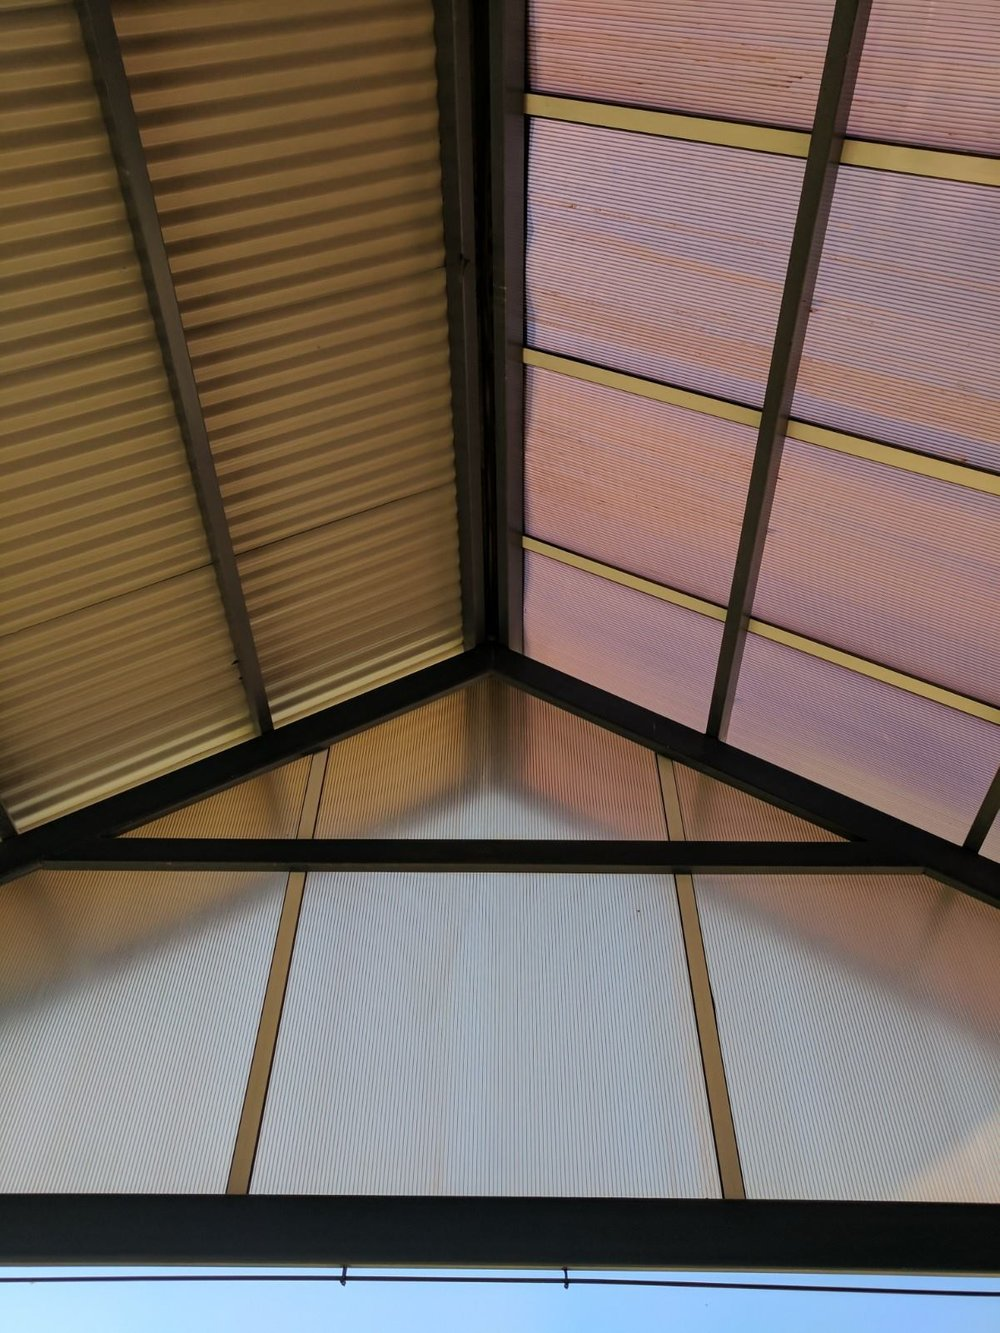 The Lapa roof - solid to the harsh north, transparent to allow light in